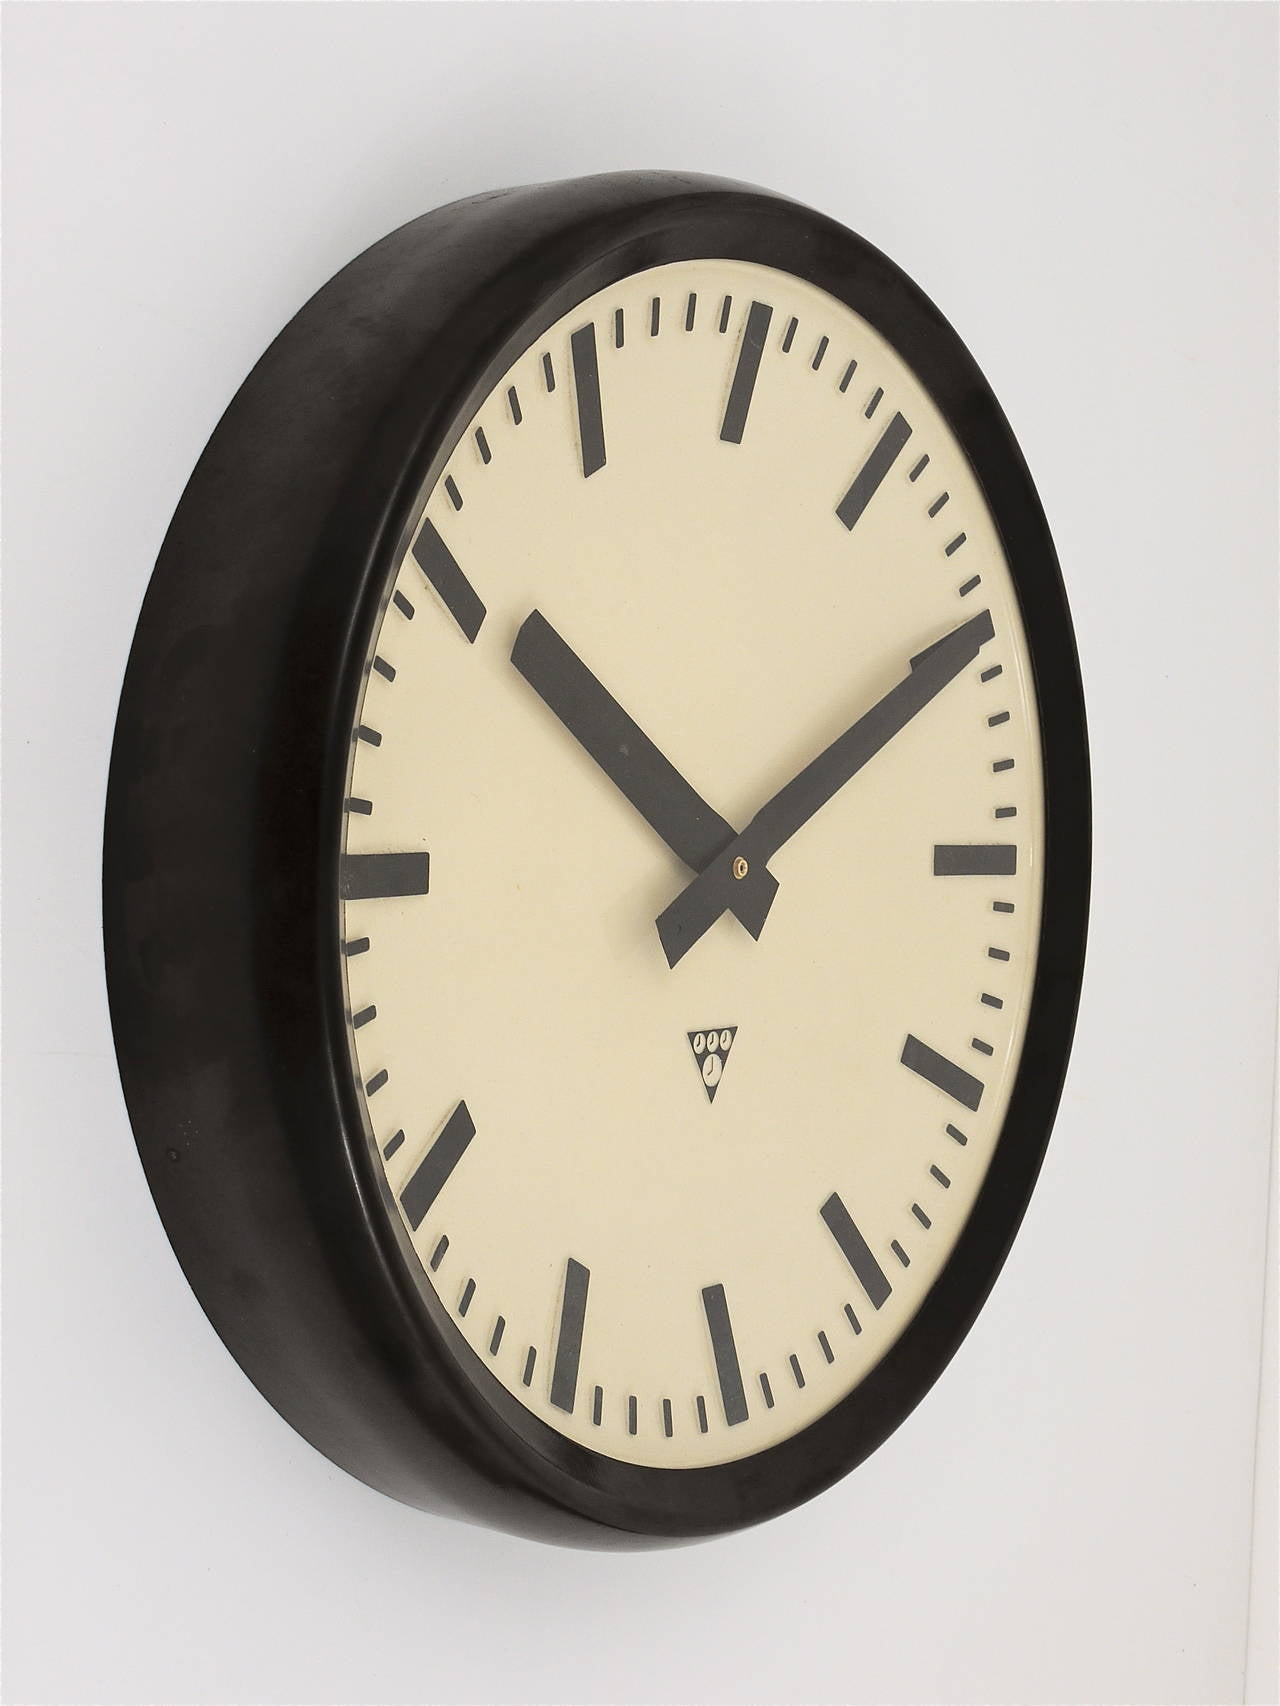 Very big bakelite industrial train station wall clock for Train station style wall clock